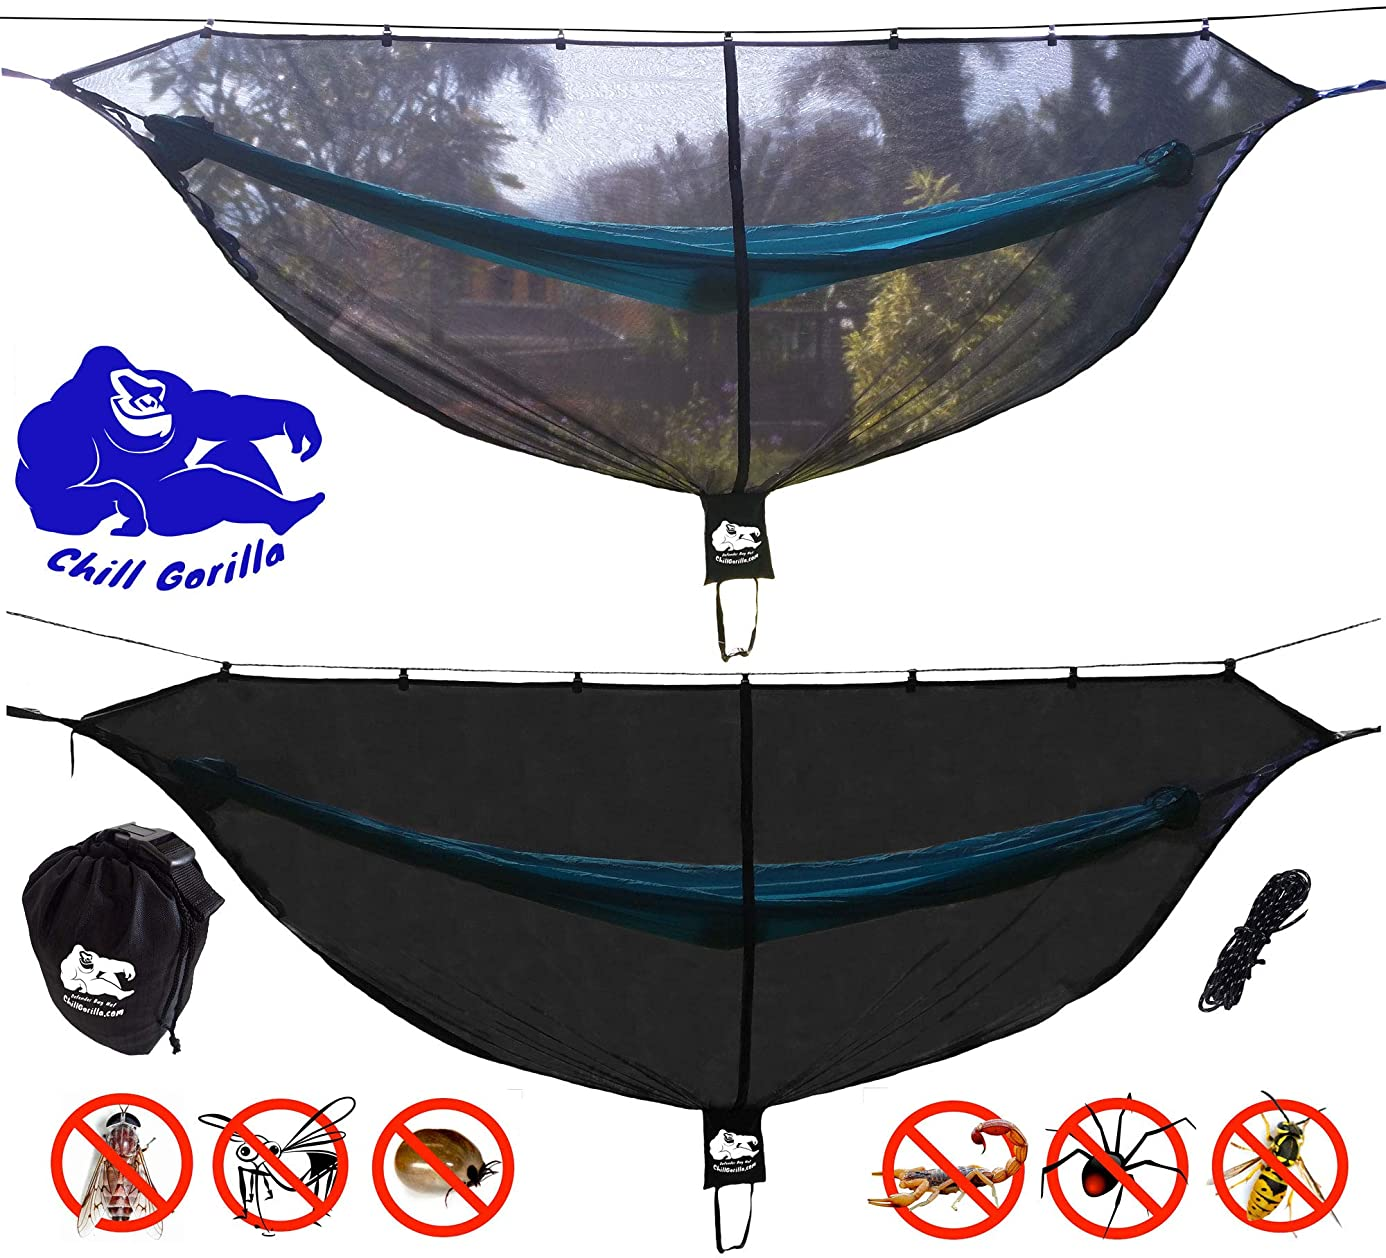 Chill Gorilla Hammock Mosquito Net Stops All Bugs & Insects. Fast Easy Setup. Compact, Lightweight. Size 132